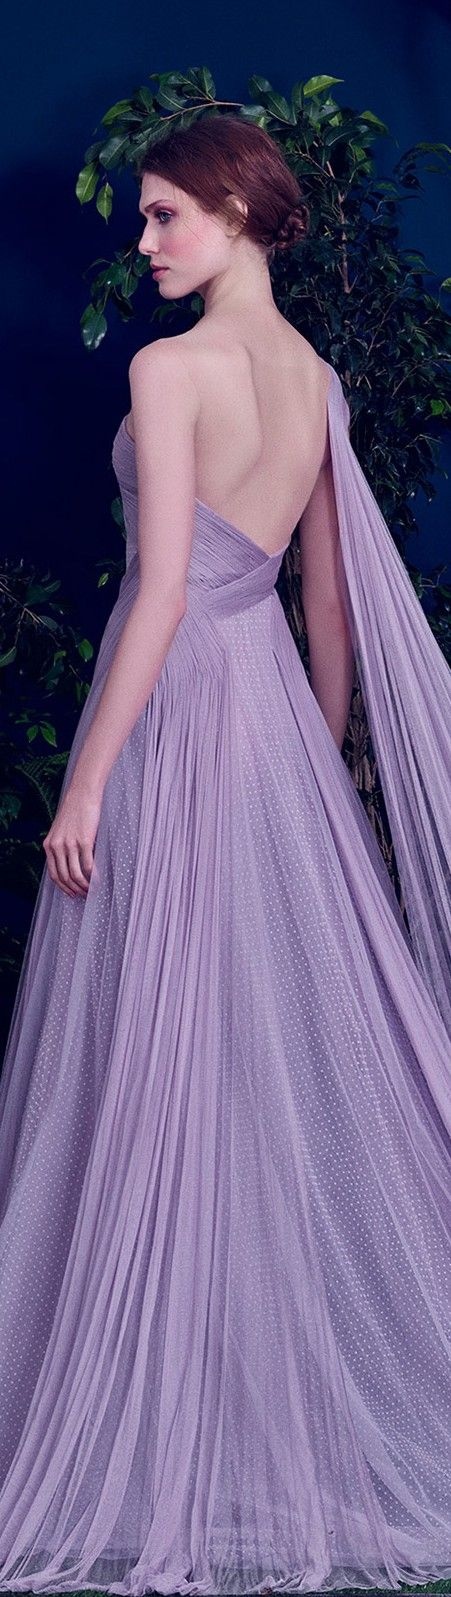 Hamda Al Fahim FW 2016 | Unique Wedding dresses | Pinterest ...